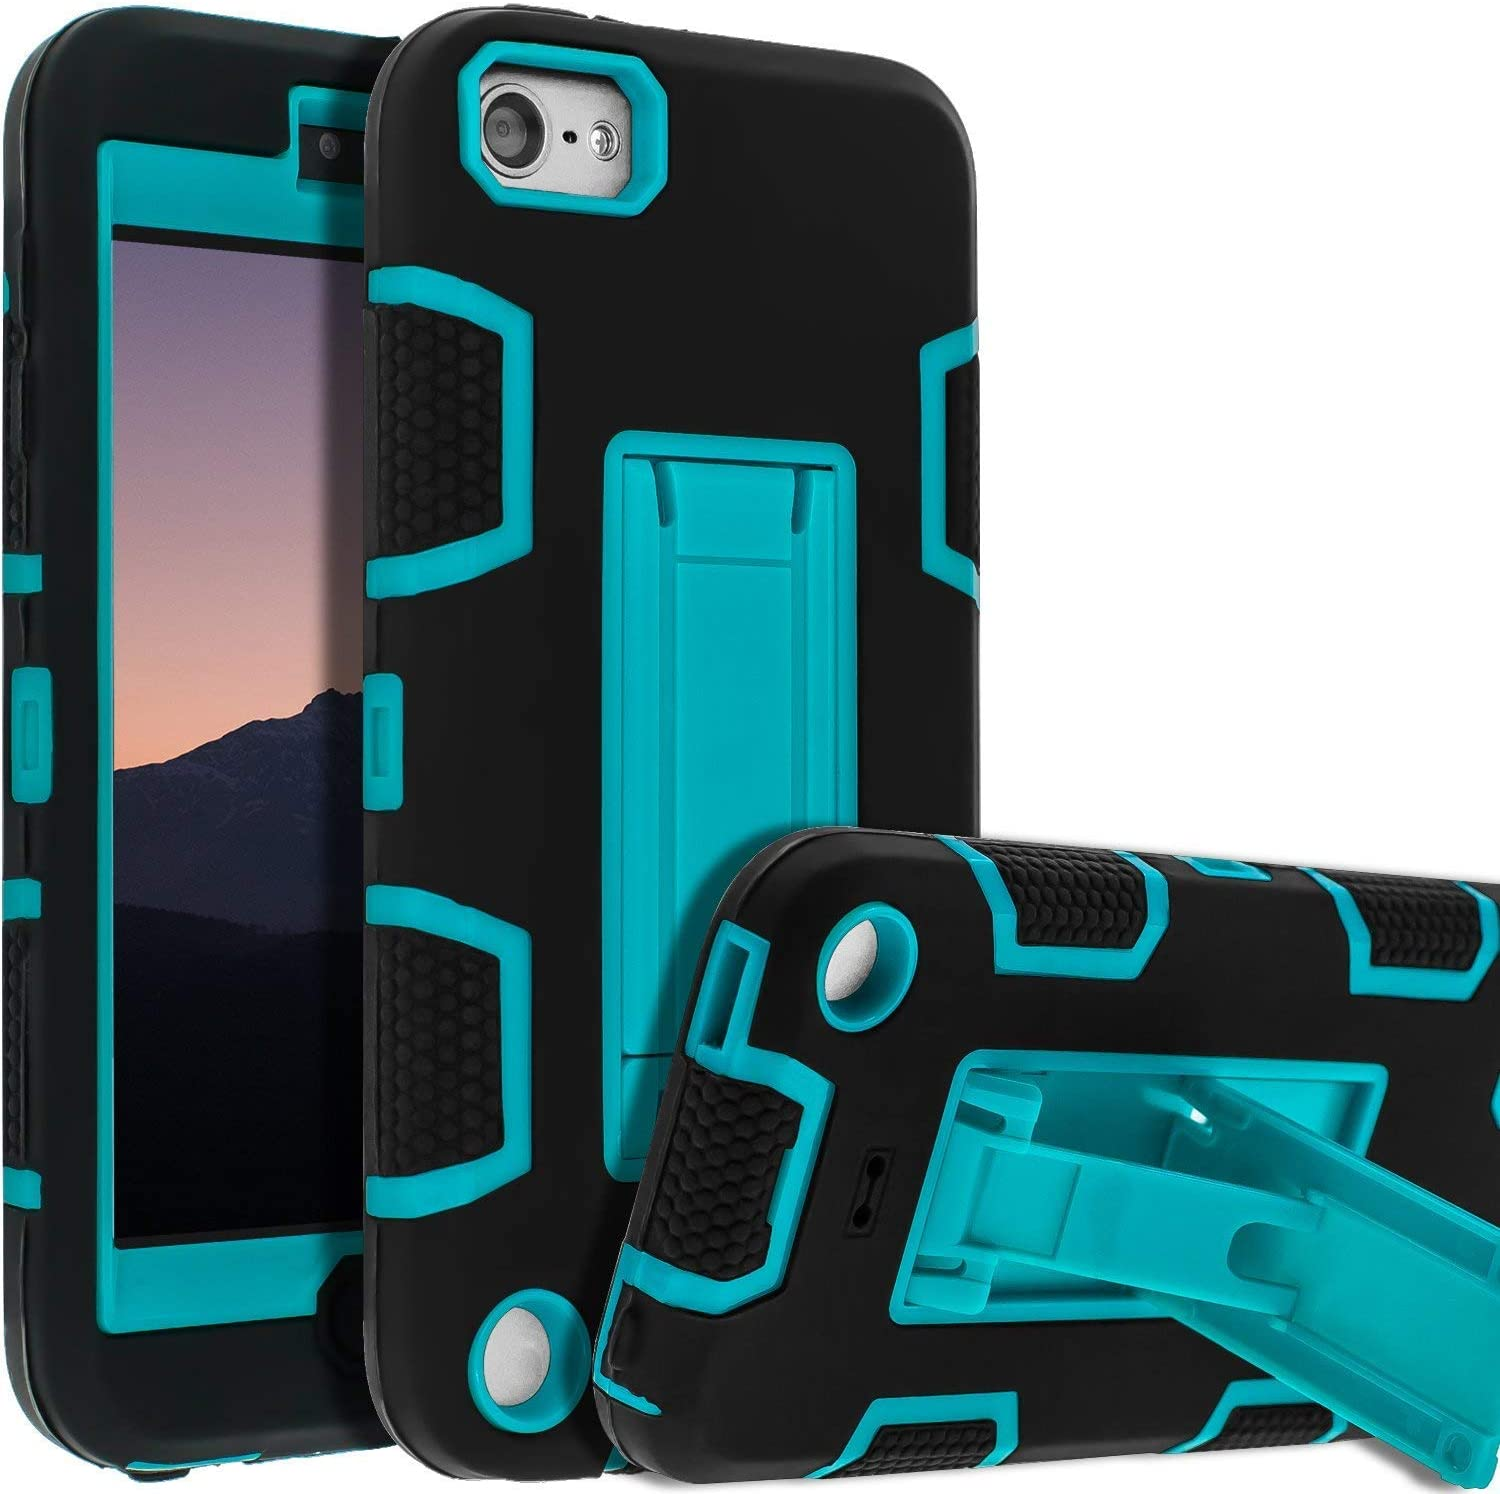 iPod Touch 7th Gen Case,iPod Touch 6th Gen Case,Kickstand Case for iPod Touch,Anti-Scratch Anti-Fingerprint Heavy Duty Protection Shockproof Rugged Cover Apple iPod Touch 2019,Blue-2